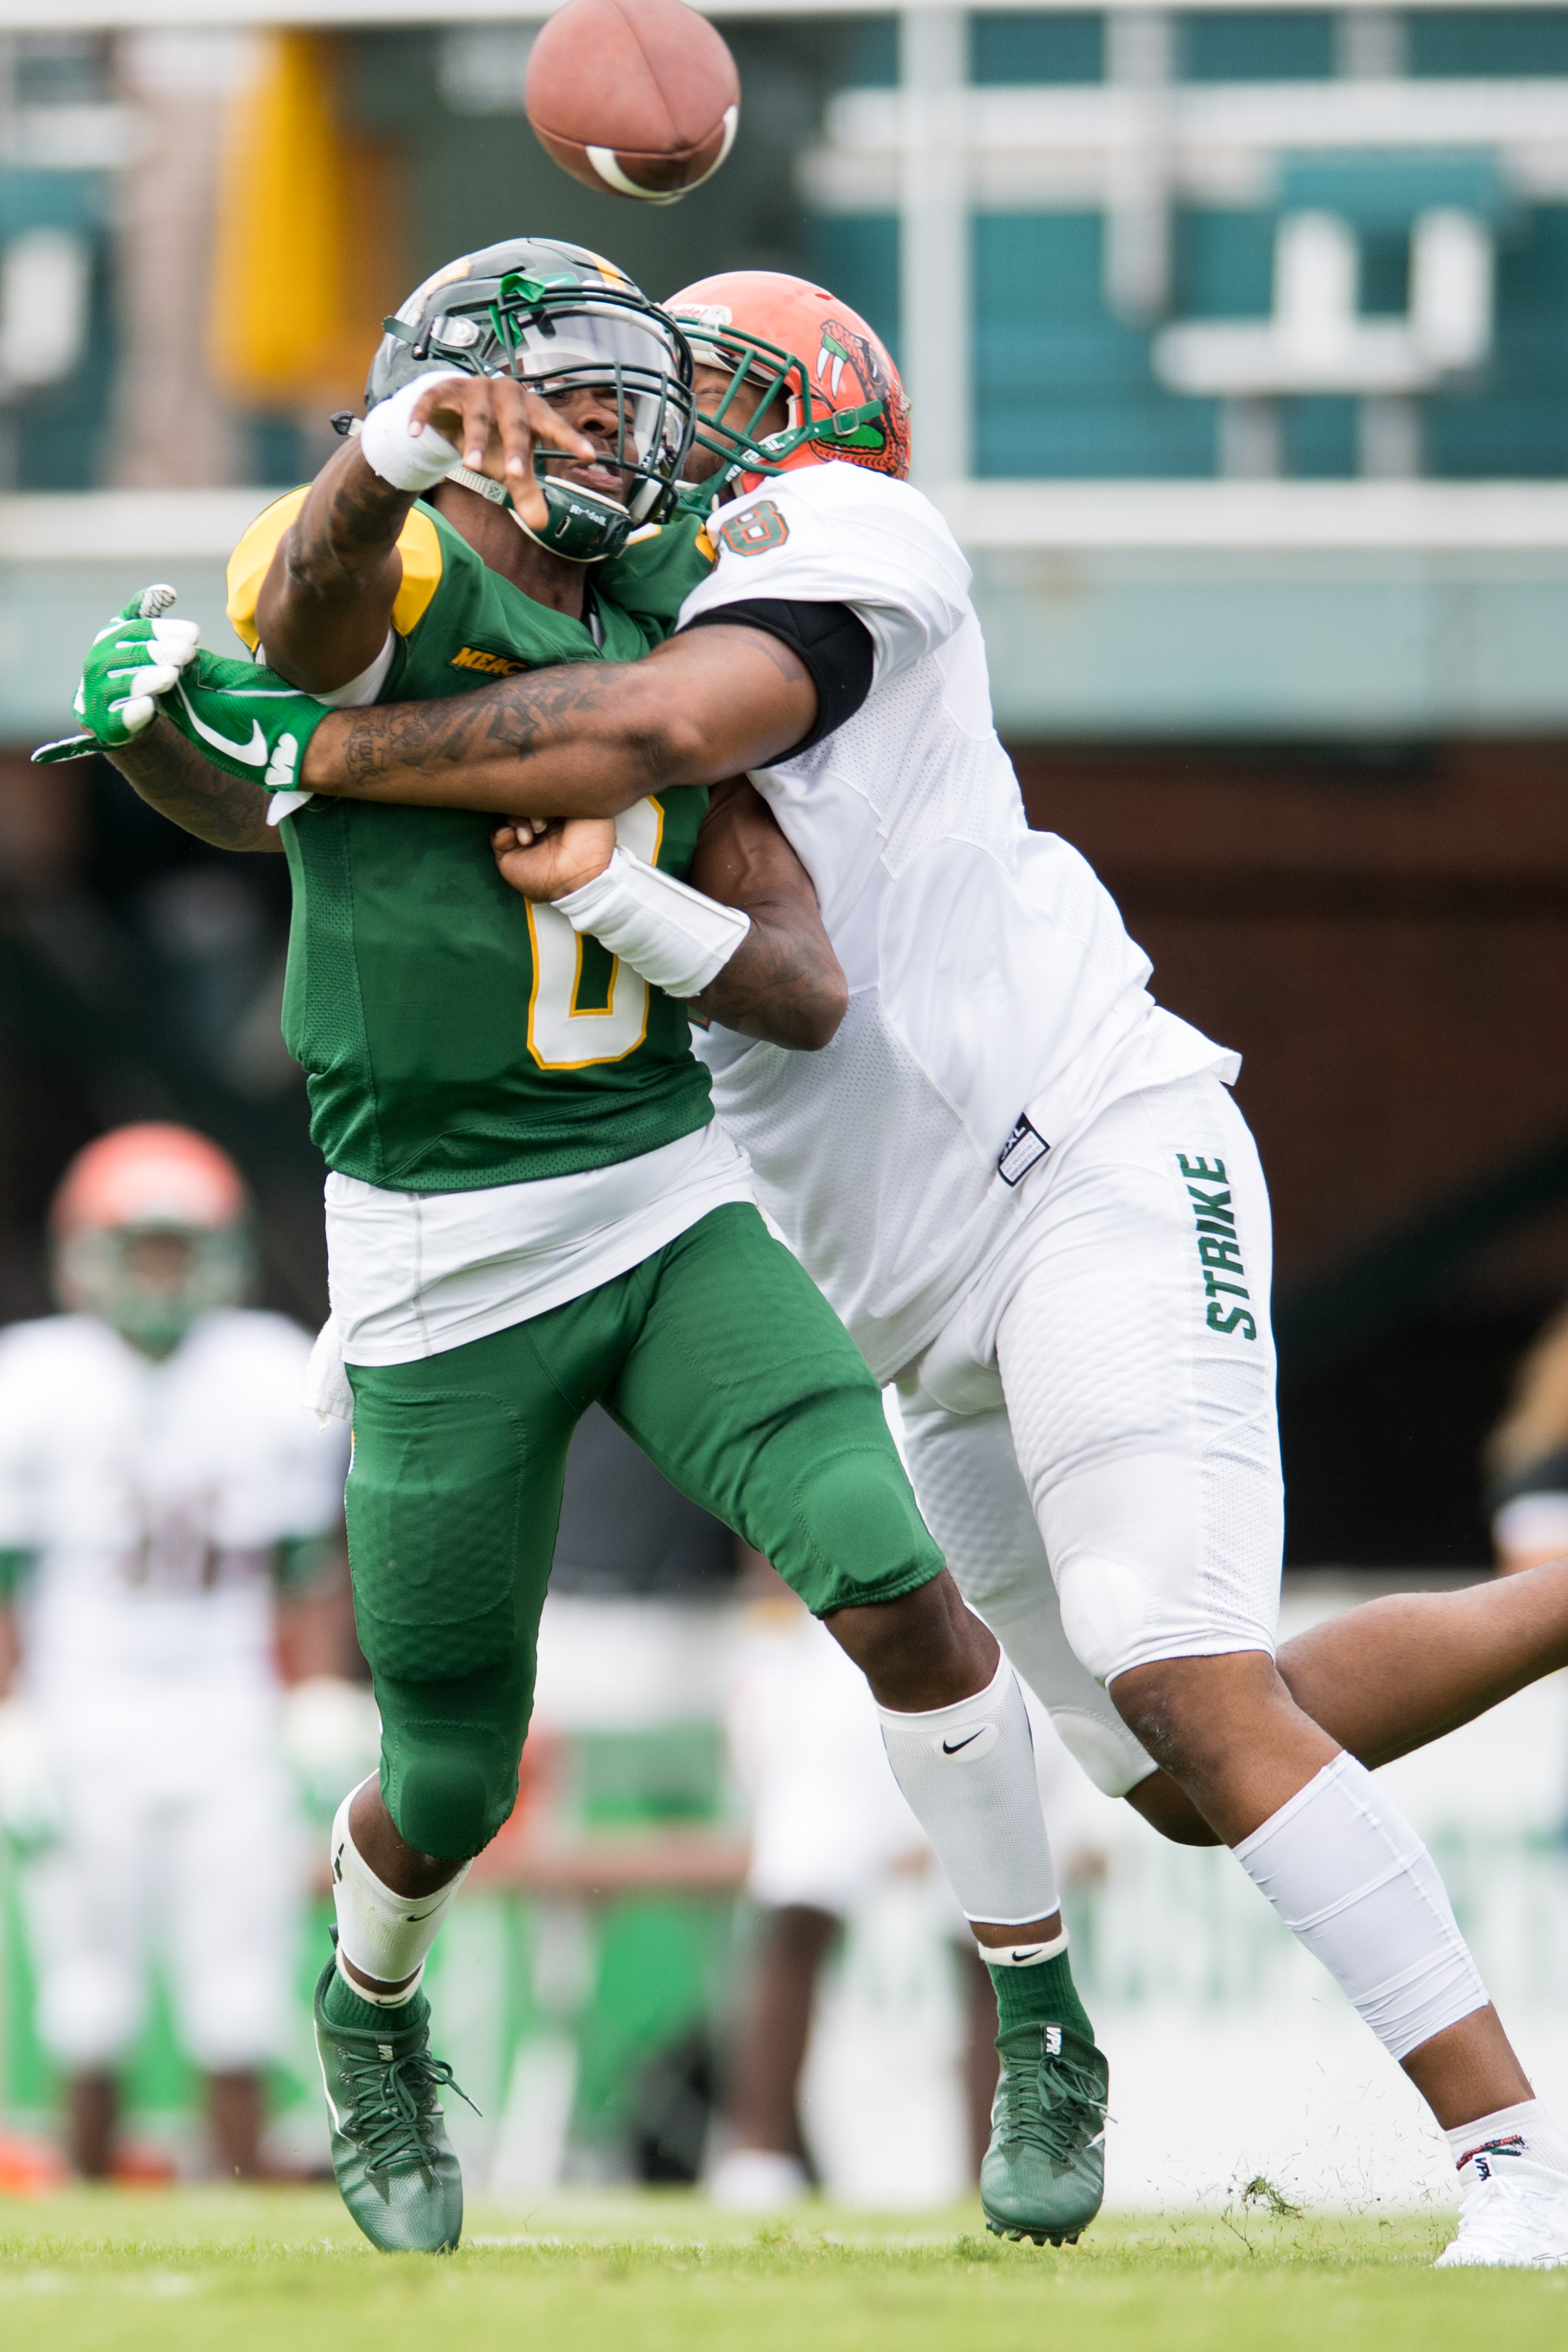 Norfolk State Spartans quarterback Juwan Carter (8) gets hit by Florida A&M Rattlers defensive lineman David Richardson (98) during the Saturday, October 7th 2017 game held at Dick Price Stadium in Norfolk, Virginia. Score is tied 14-14 at the half.